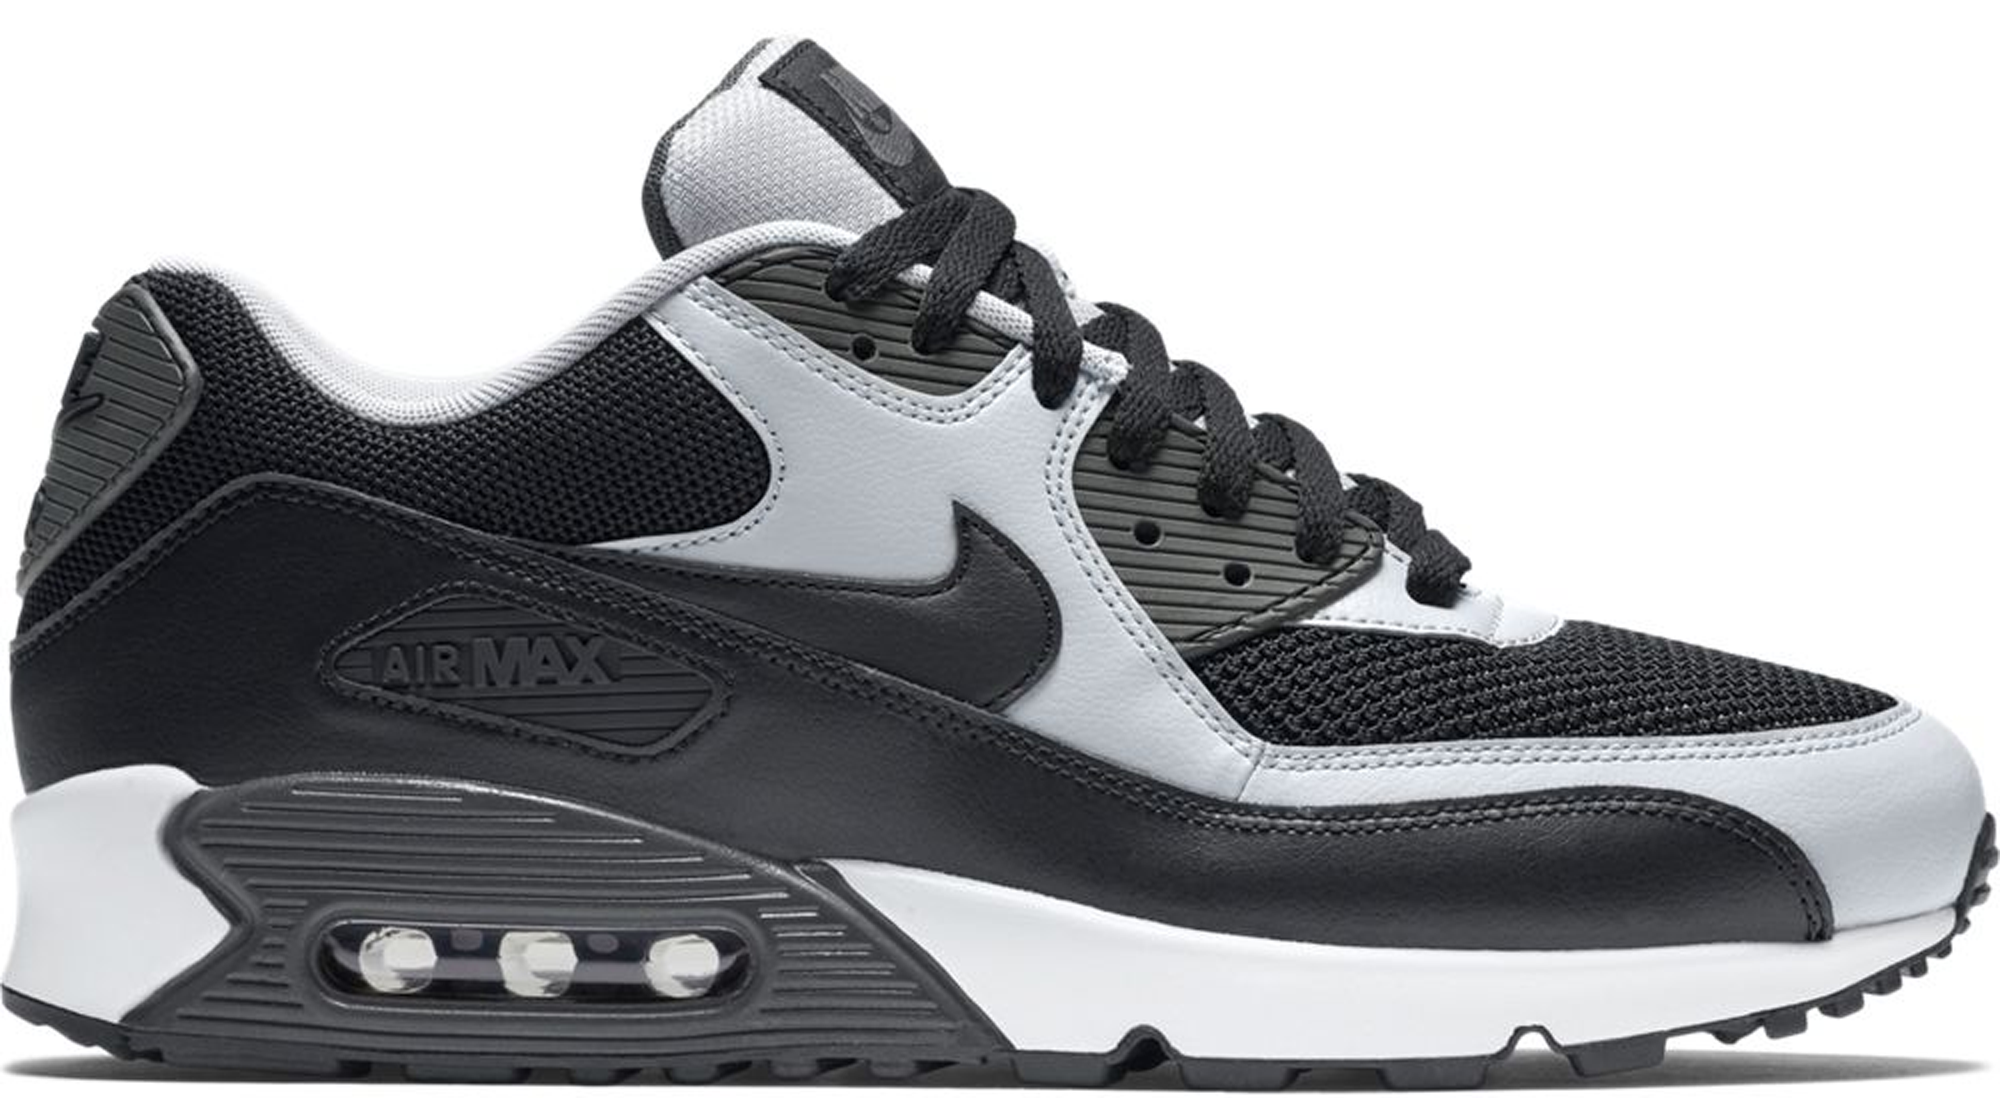 Air Max 90 Black Wolf Grey